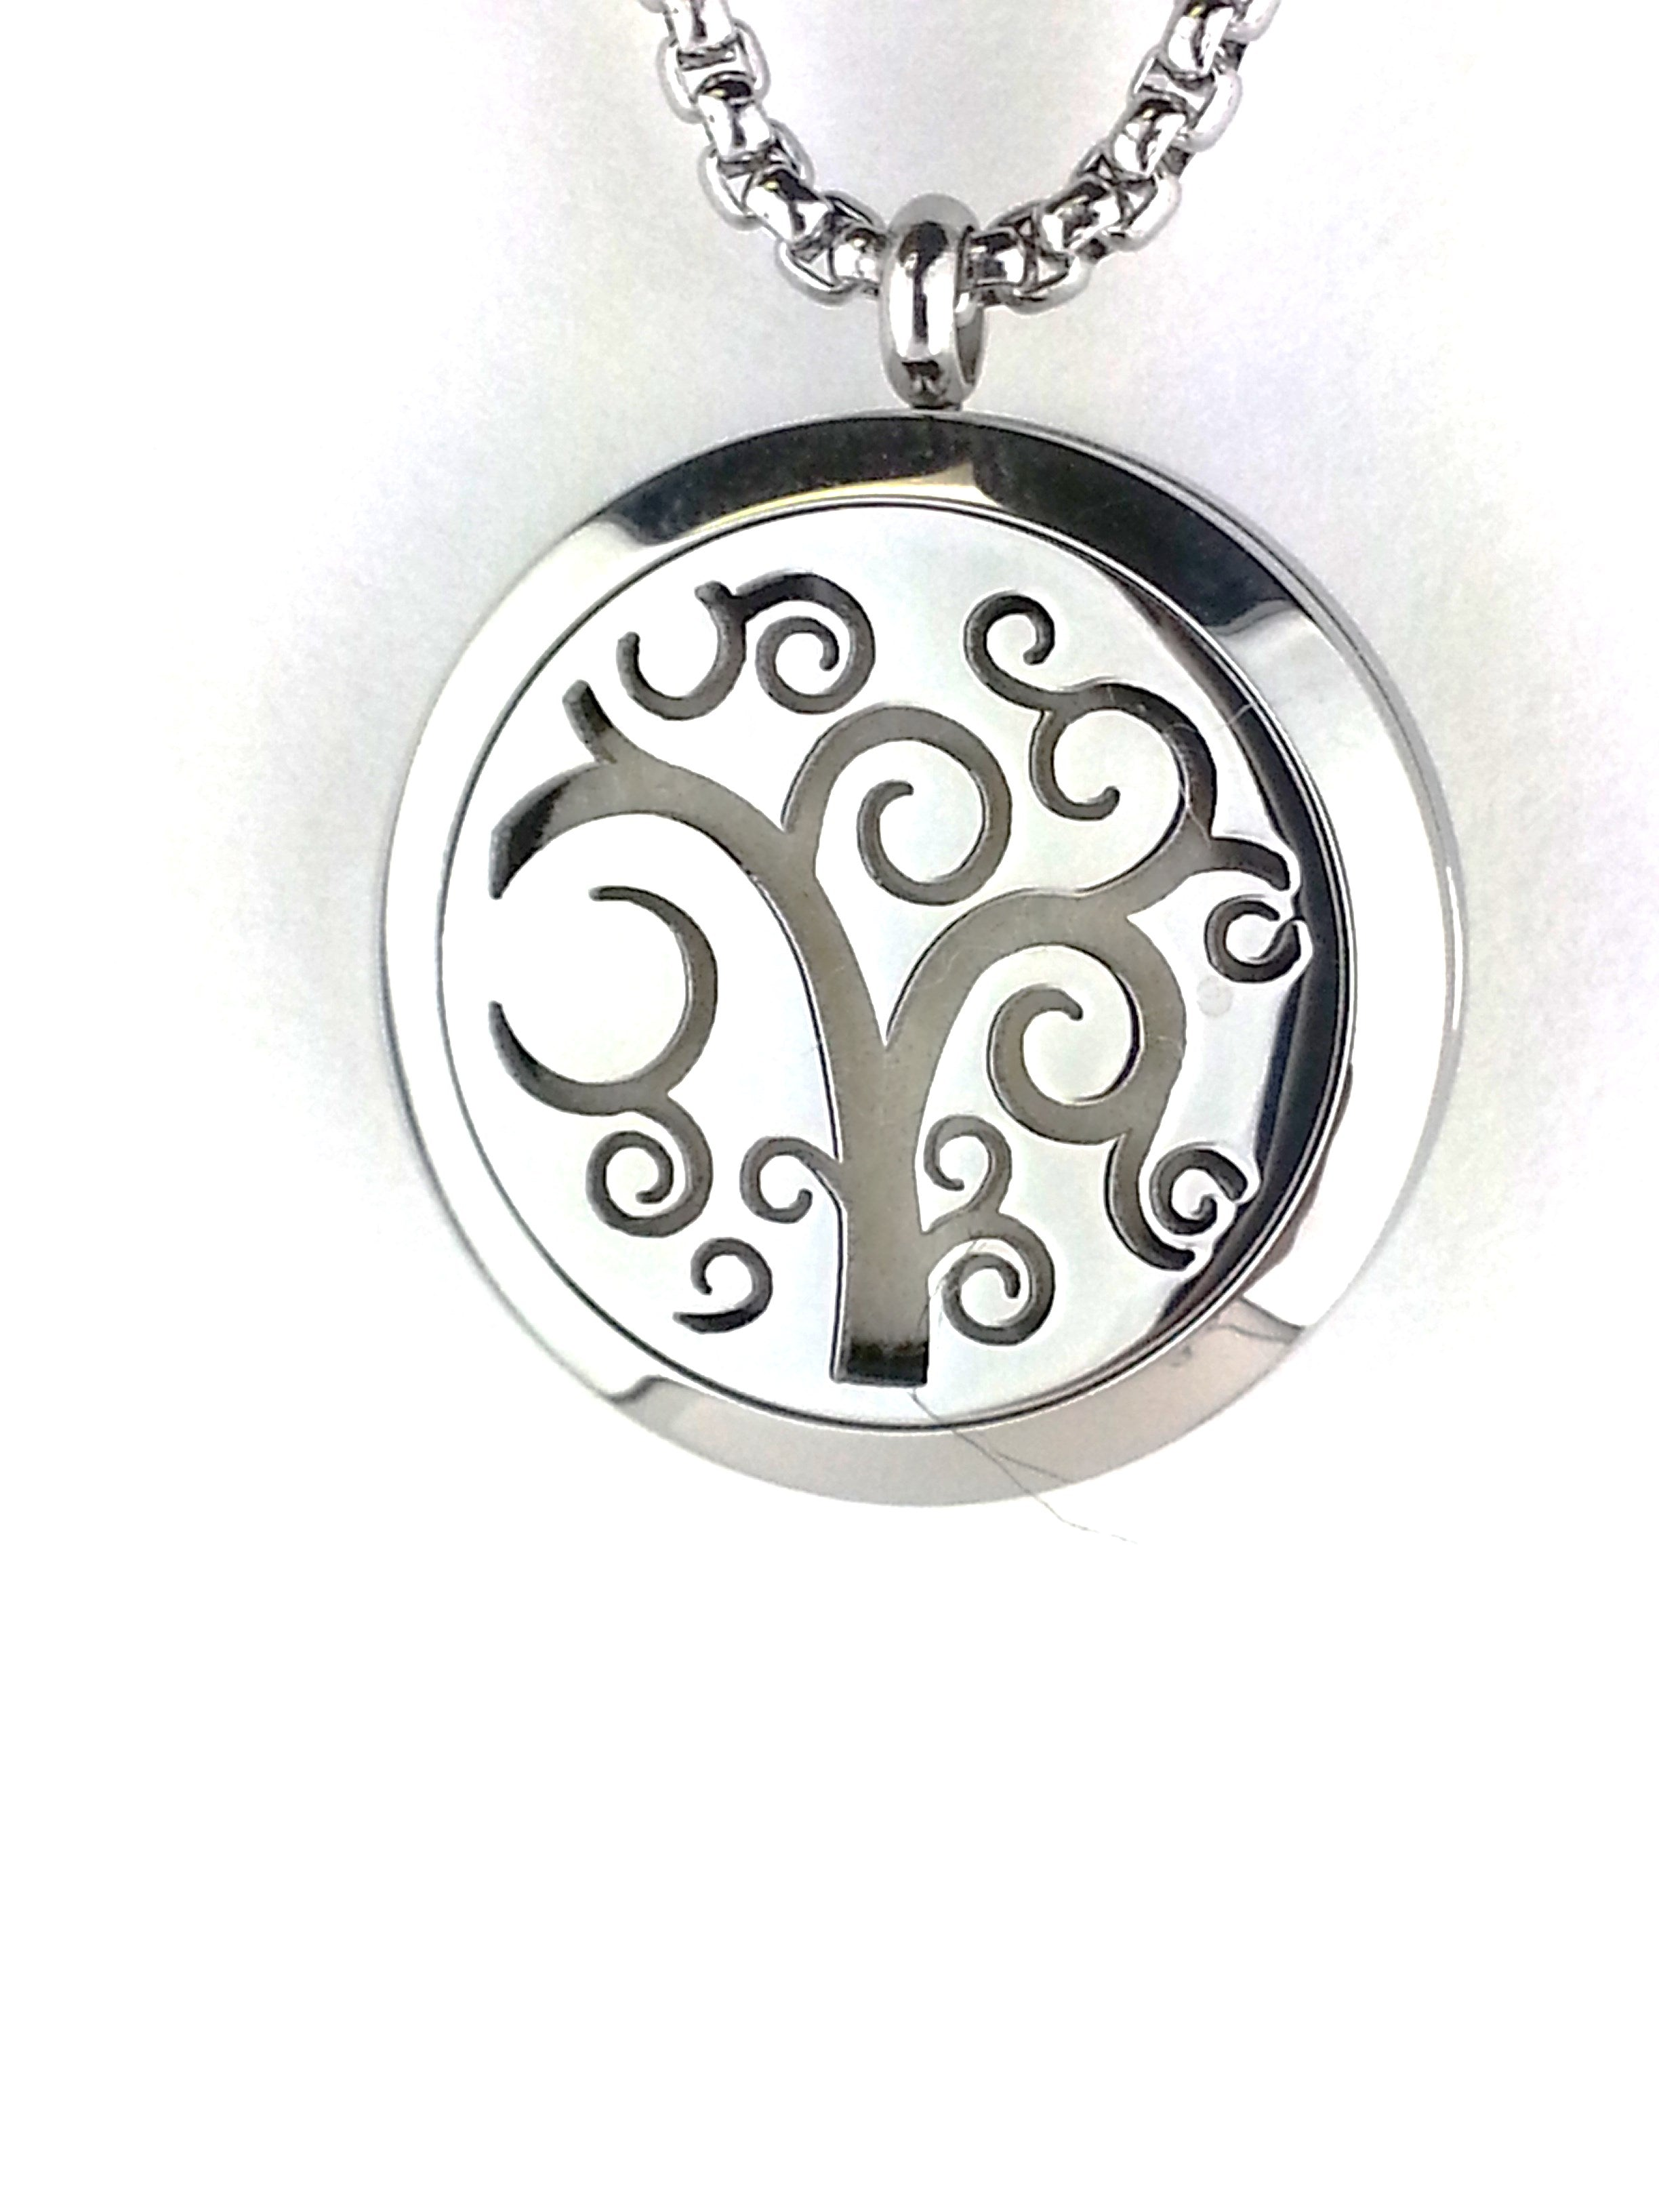 Stainless steel essential oil diffuser necklace locket is a fun whimsical tree of life with a Tree of Life. Open your diffuser locket and put  in your favorite essential oil